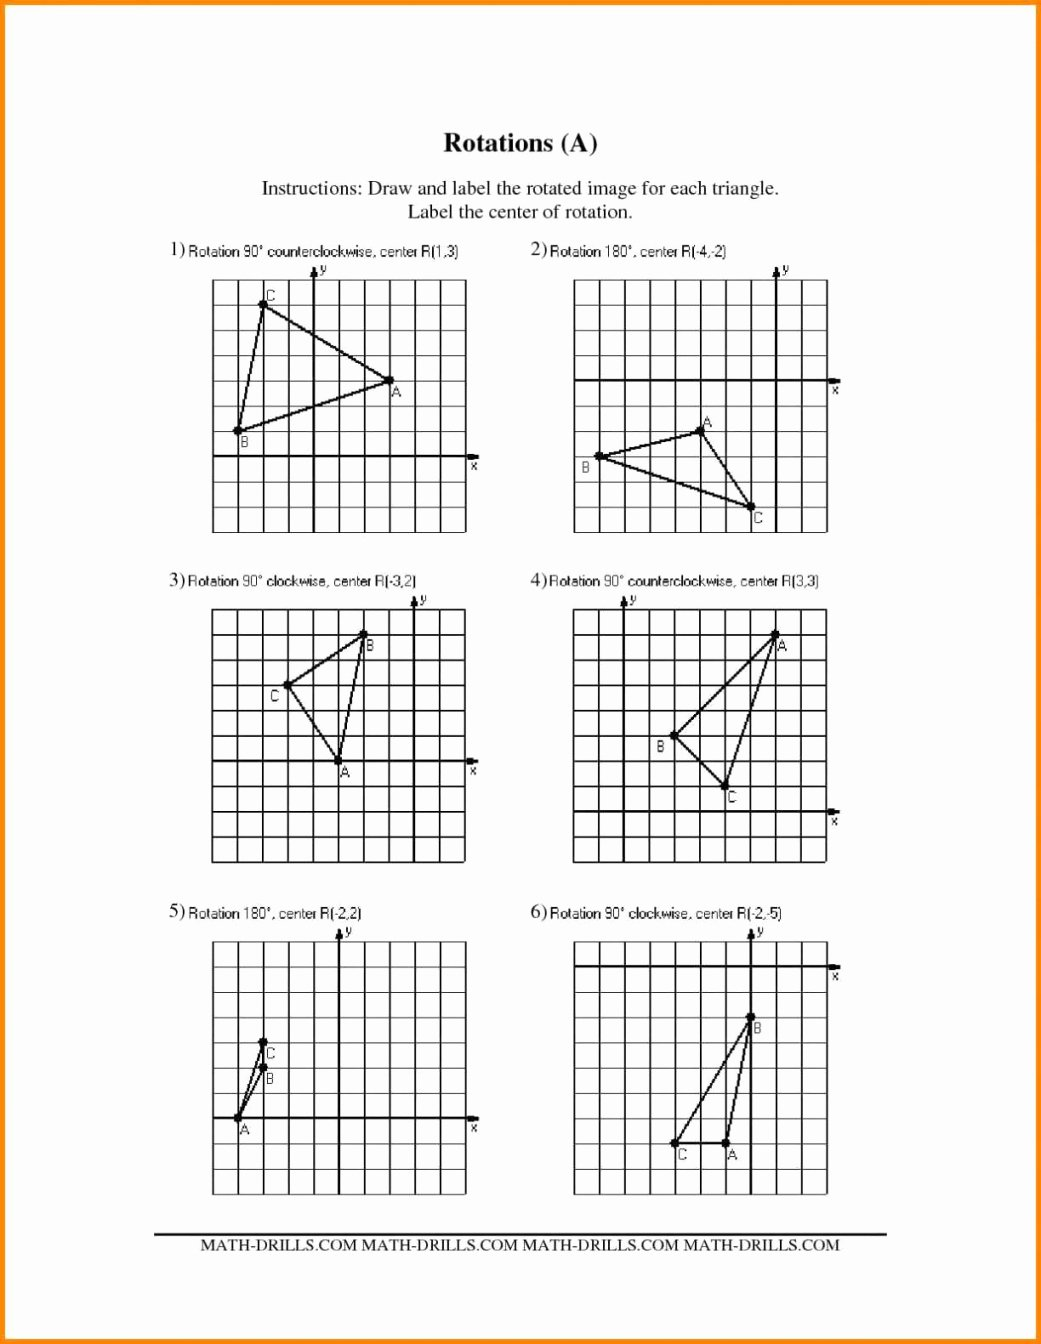 Dilations Worksheet Answer Key Elegant Vectors In Translations Worksheet Geekchicpro Kateho Math